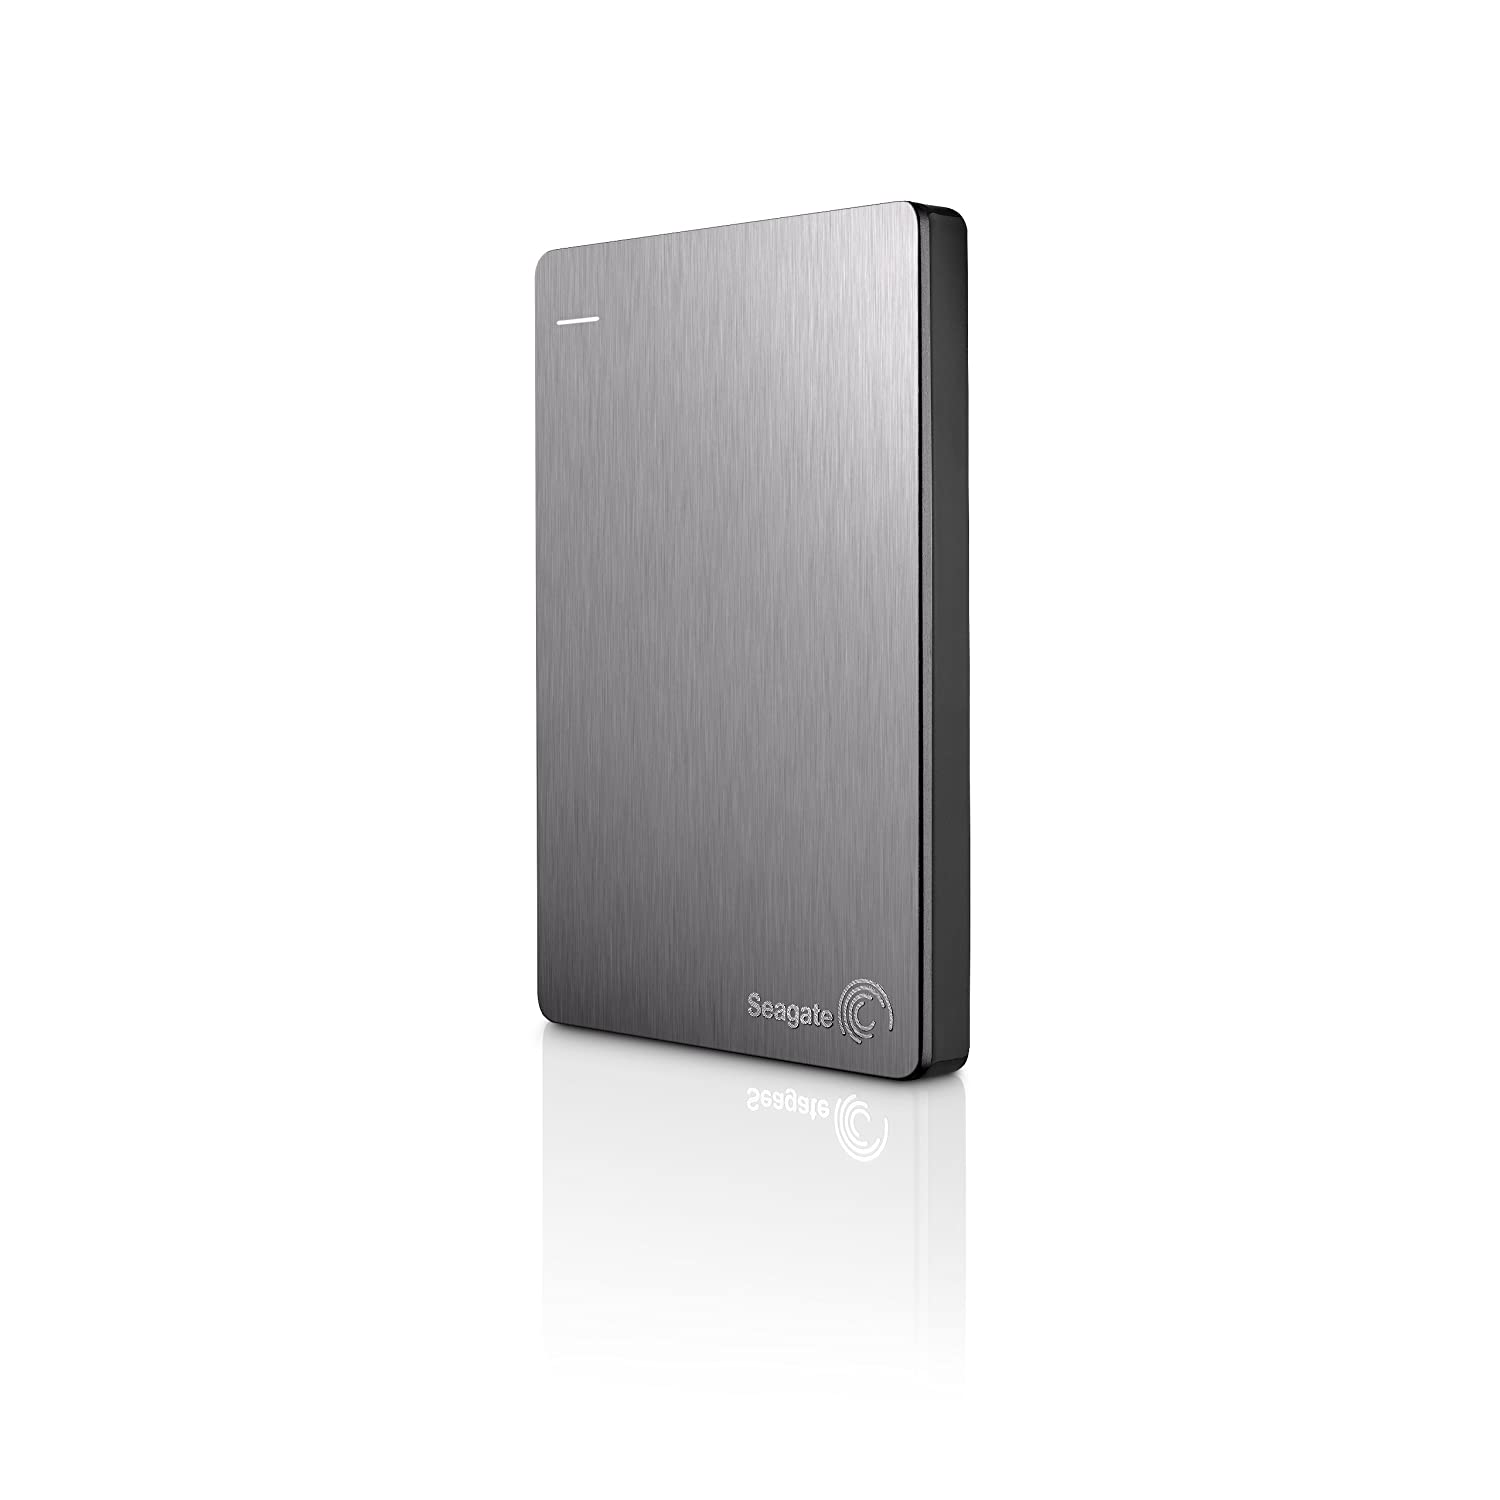 Seagate Backup Plus Slim 2tb Usb 30 Portable External Hard Drive Harddisk Stdr2000101 Silver 80 Neweggbusin Hot Deals